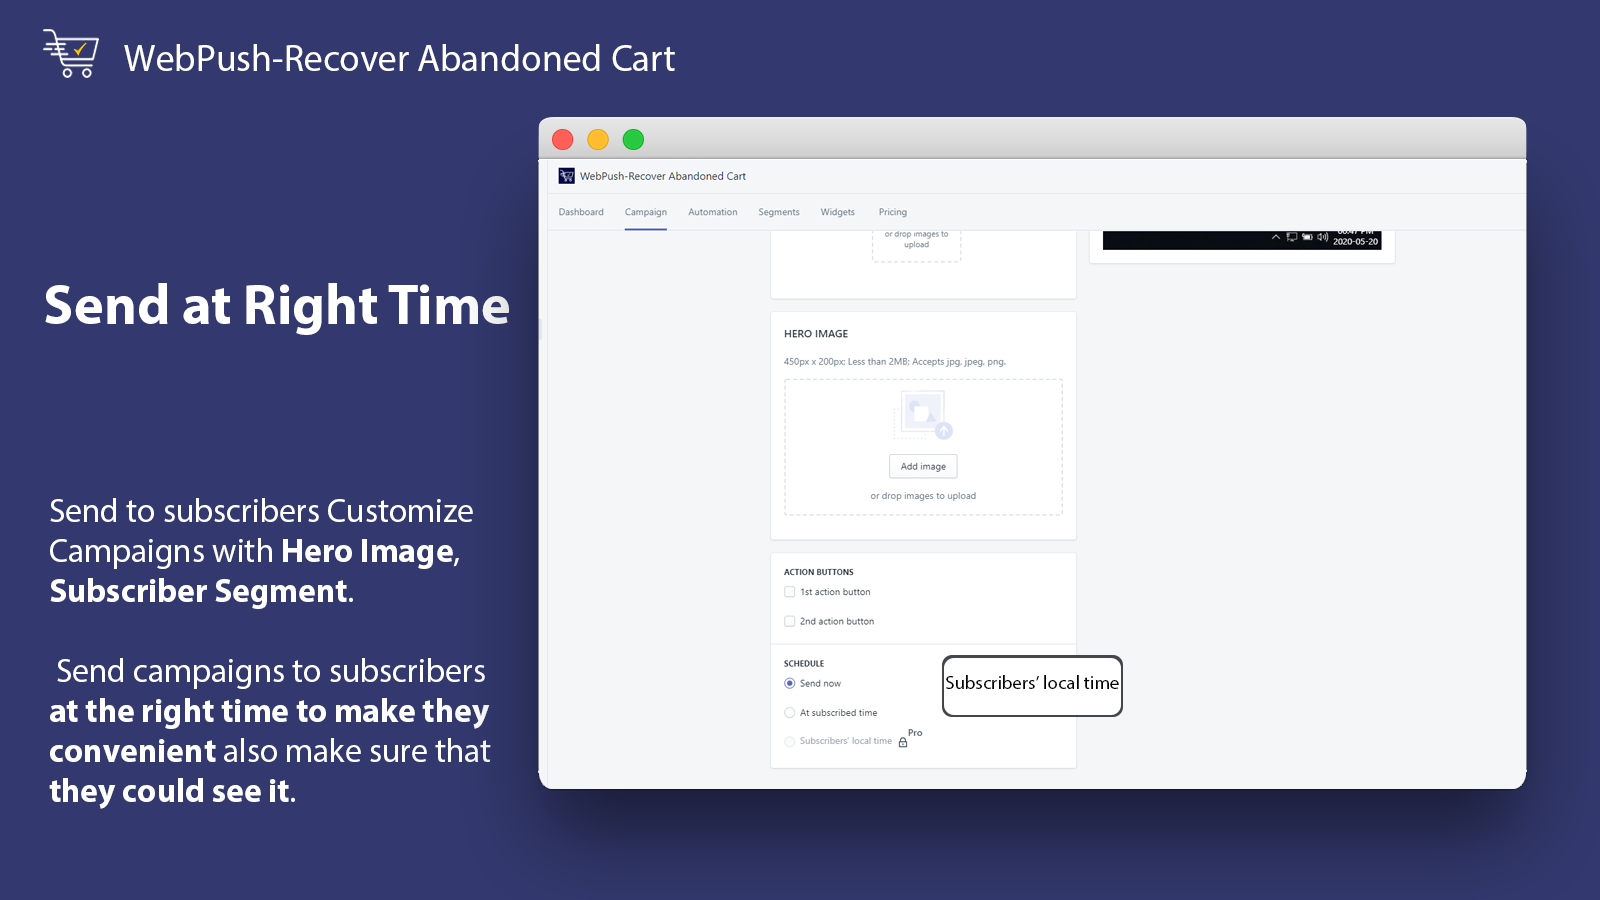 Send at Right Time_WebPush-Recover Abandoned Cart